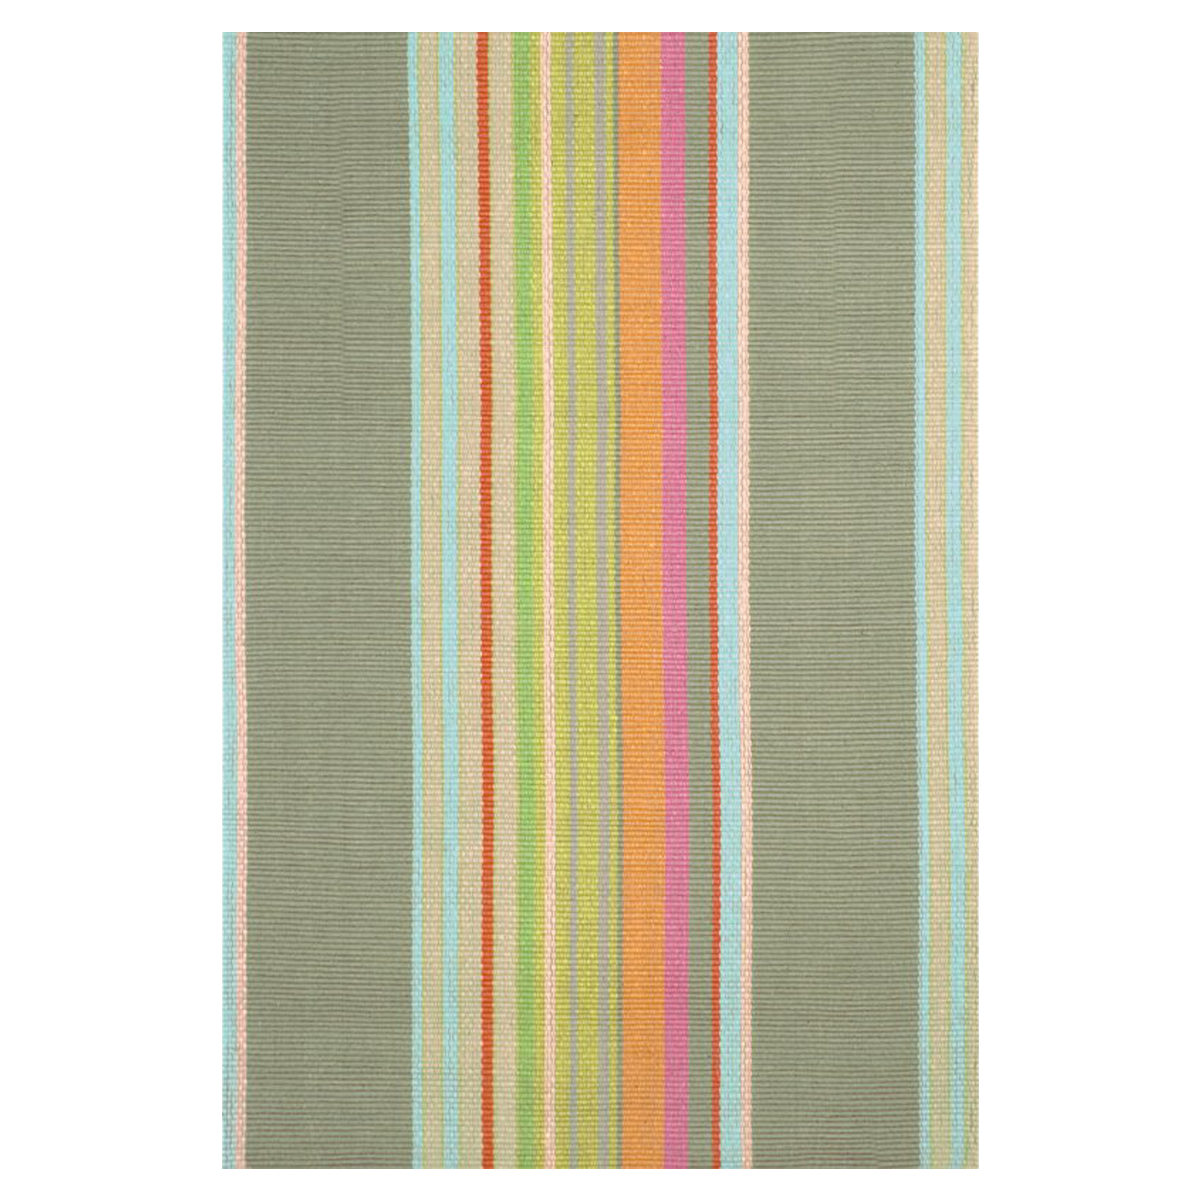 Marina Cay Striped Rug